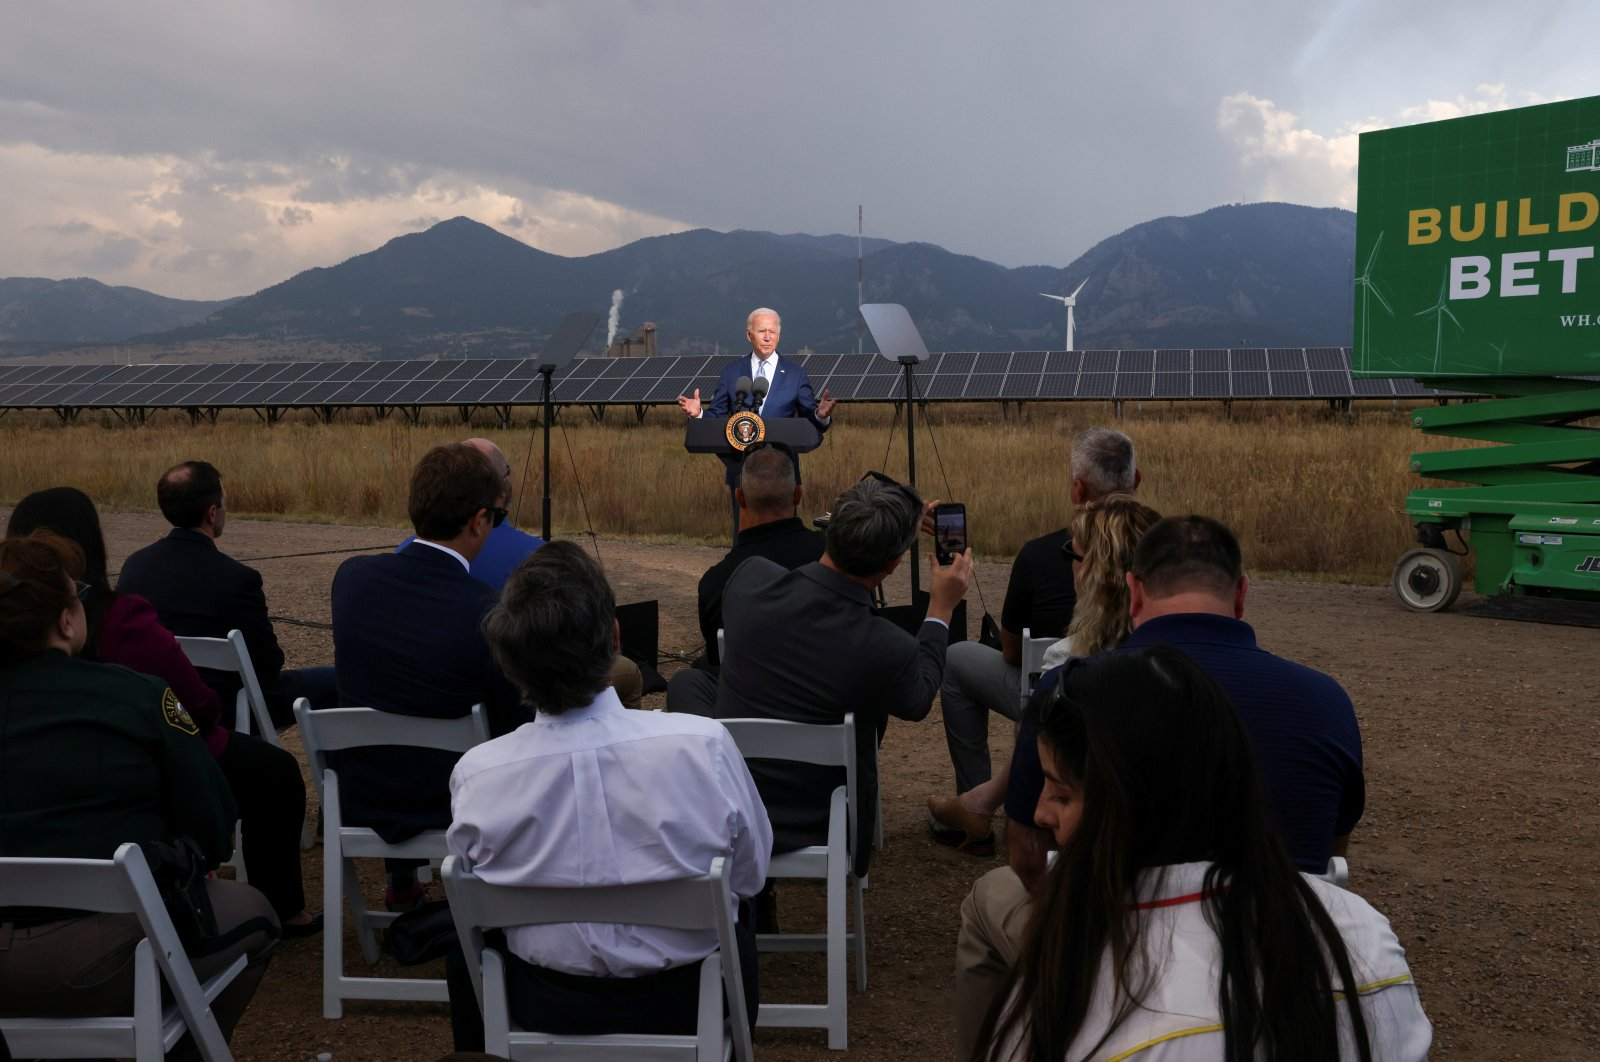 U.S. President Joe Biden makes remarks to promote his infrastructure spending proposals during a visit to the Flatirons Campus Laboratories and Offices of the National Renewable Energy Laboratory (NREL), in Arvada, Colorado, U.S. Sept. 14, 2021. (Reuters Photo)